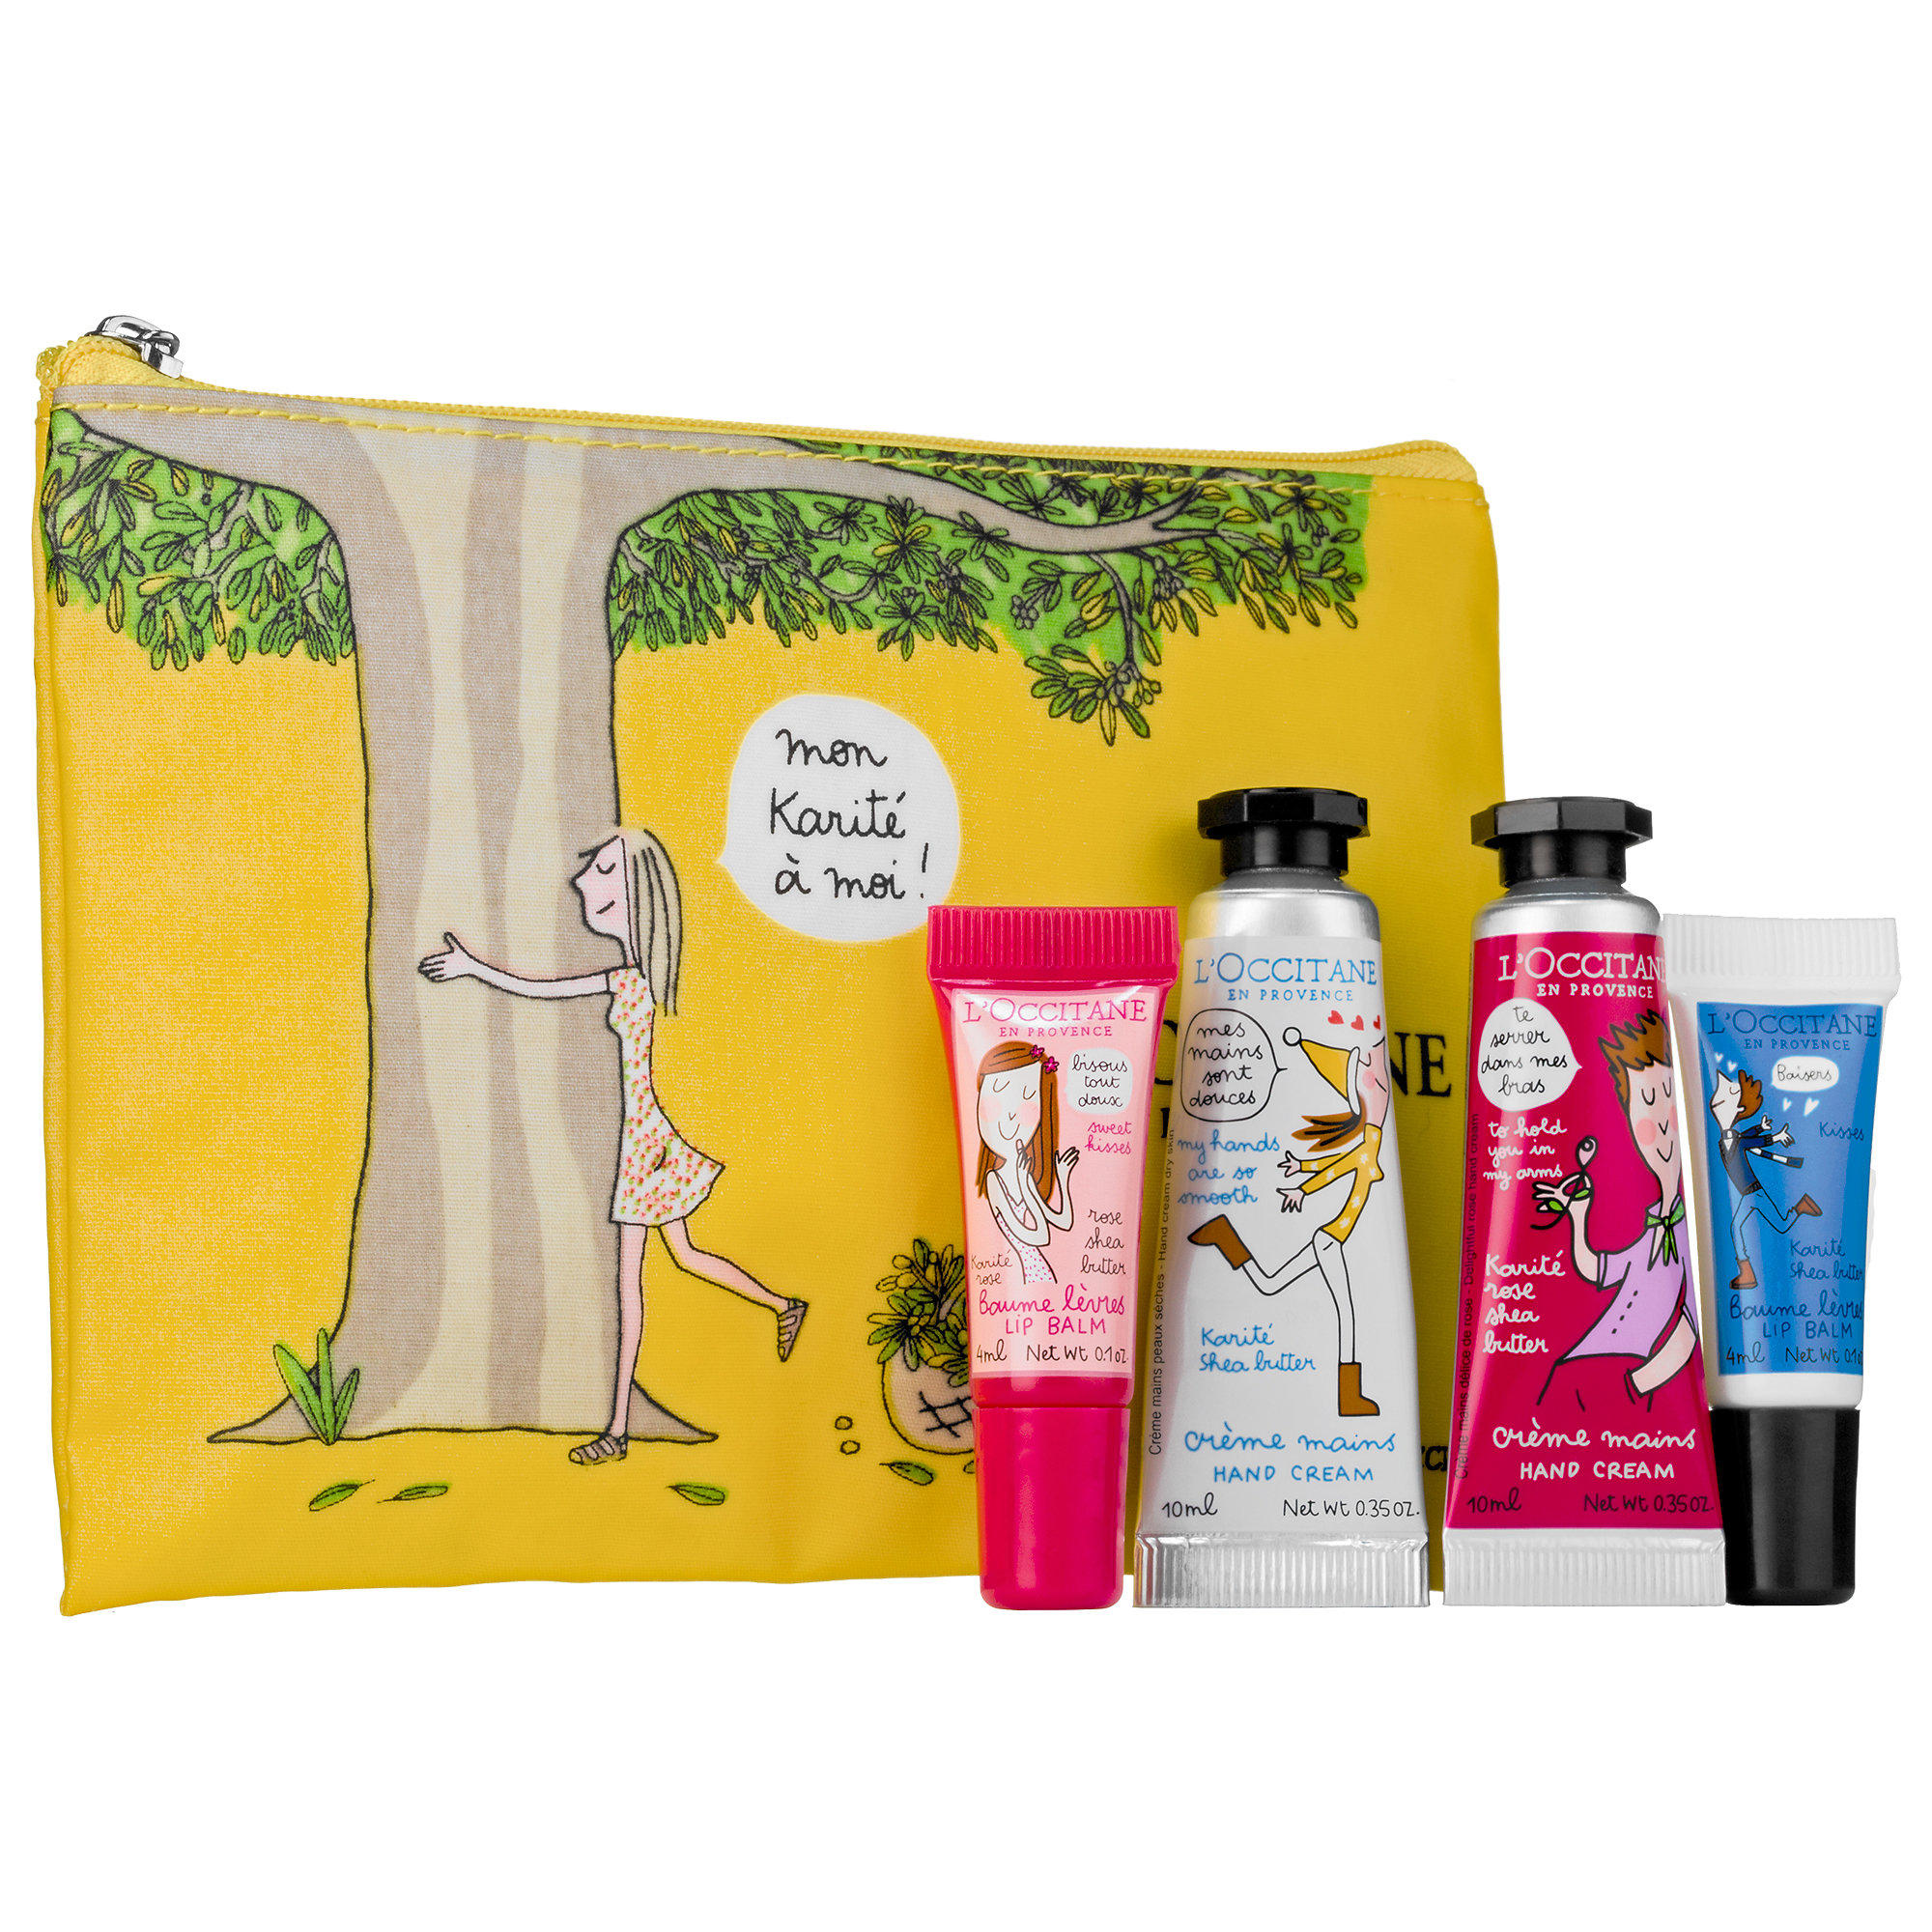 New Release L'Occitane launched Hugs & Kisses Hand & Lip Duo Set